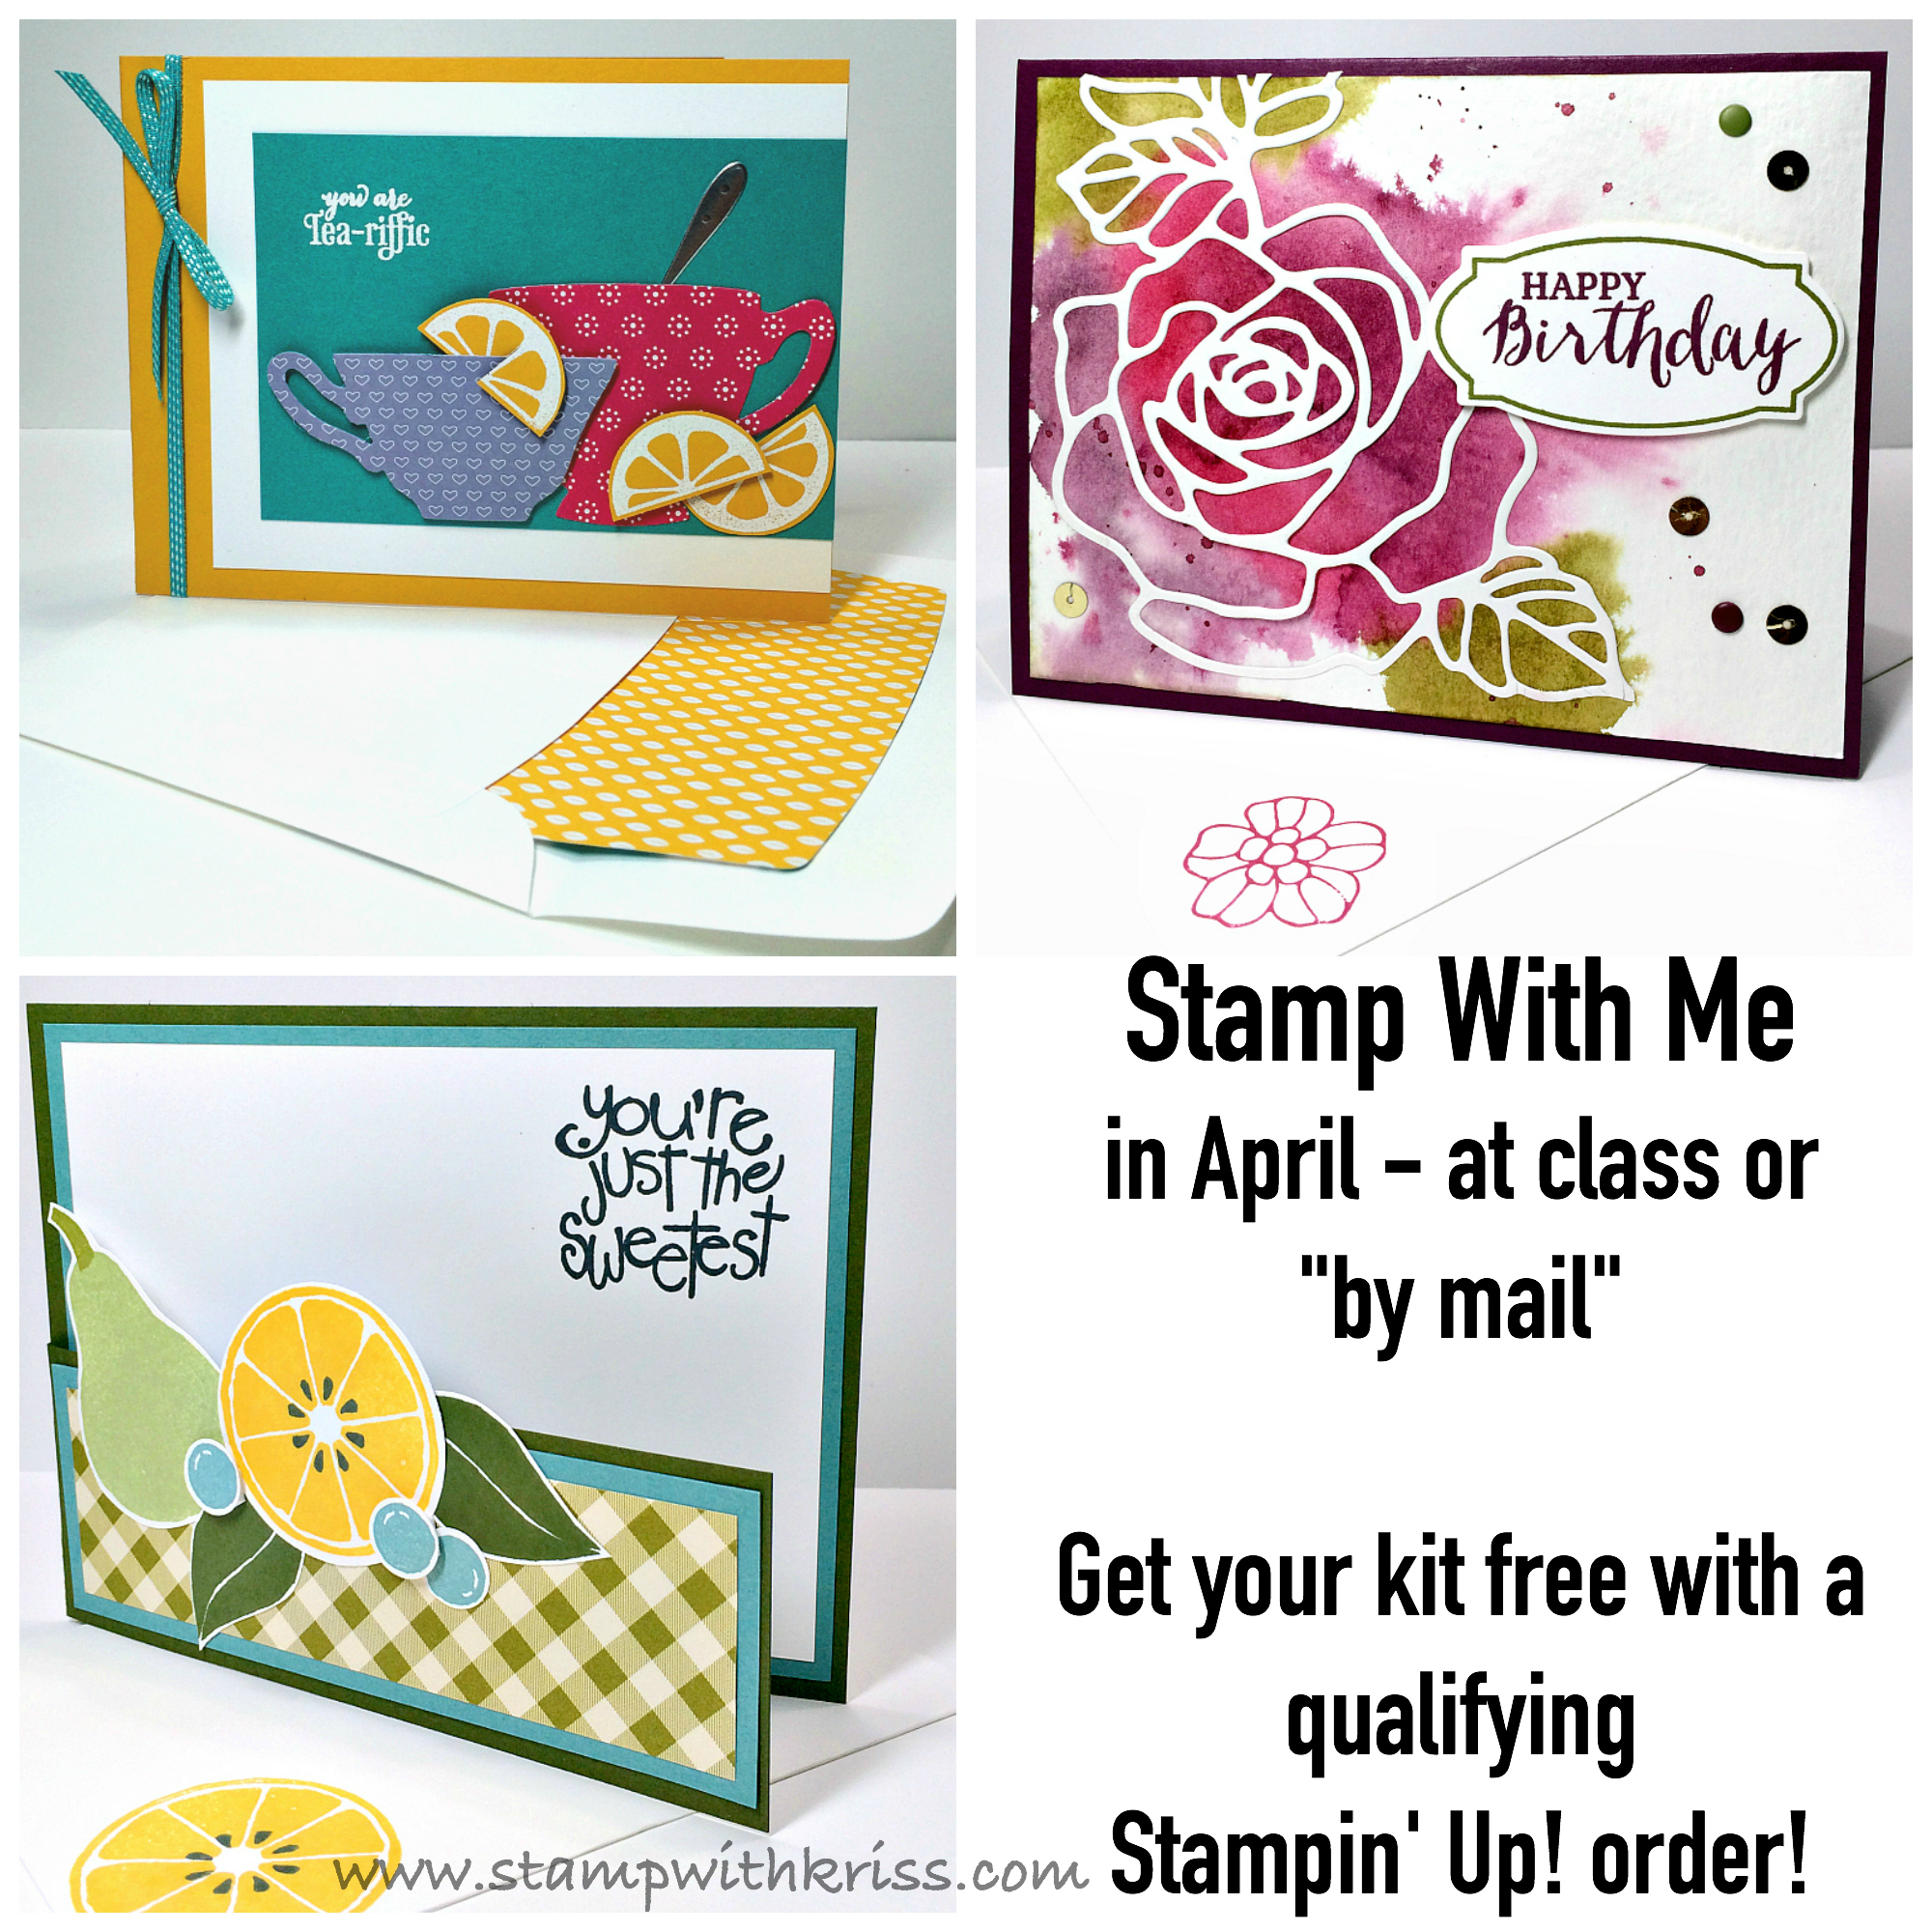 StampWithKriss com » Blog Archive » April Stamp With Me Card Class